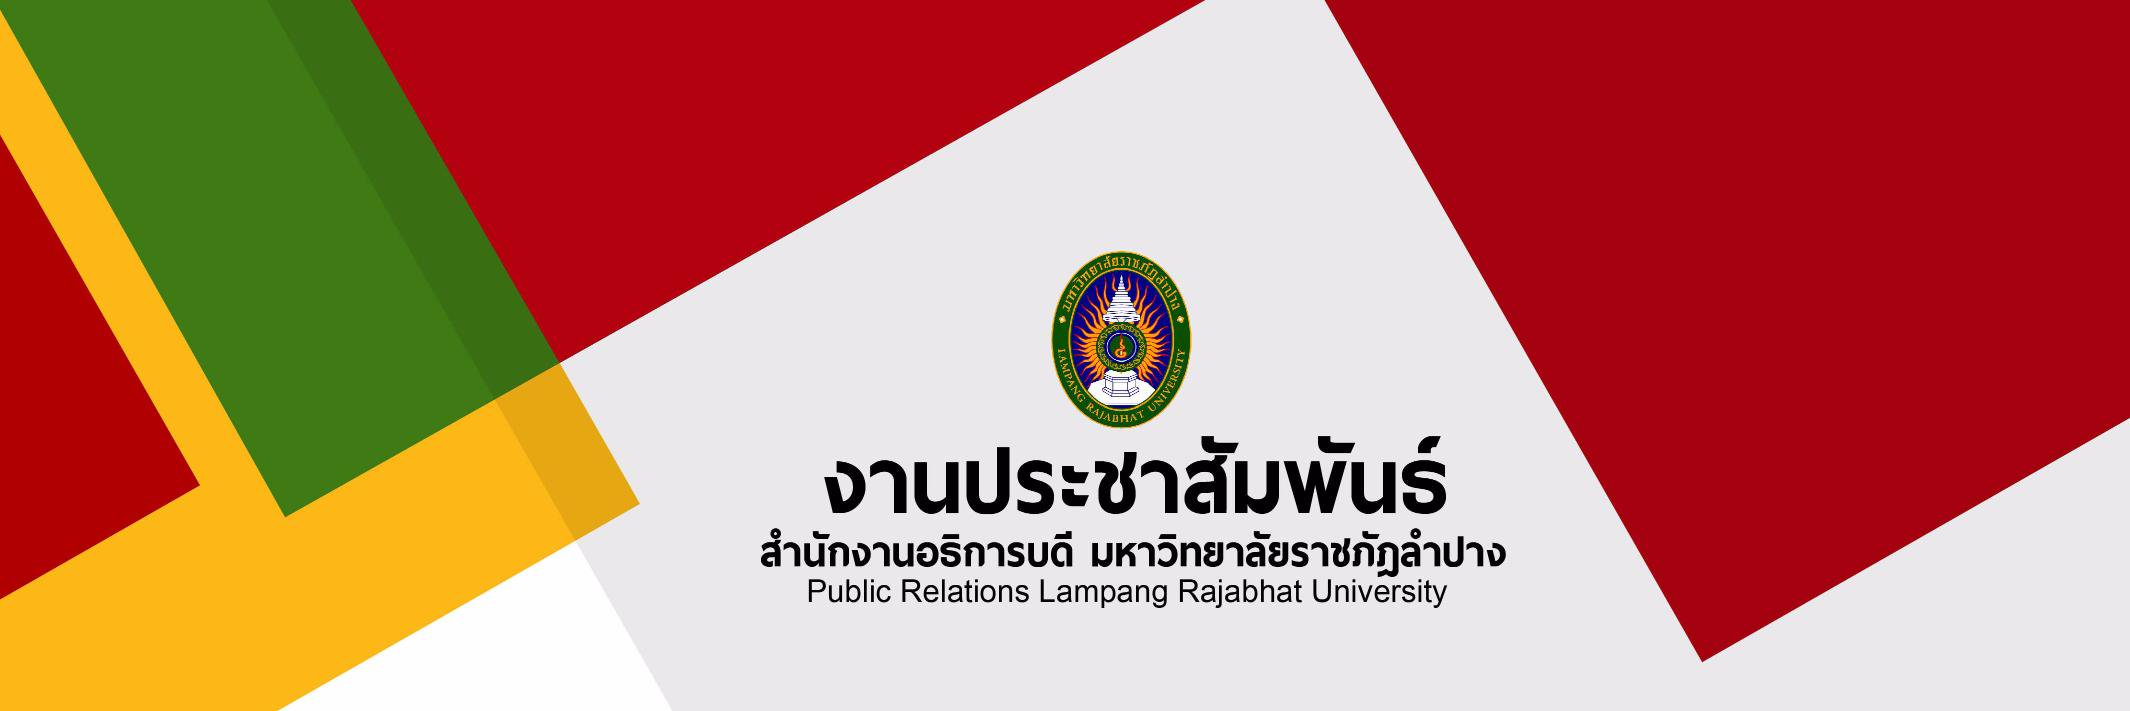 Lampang Rajabhat University's official Twitter account